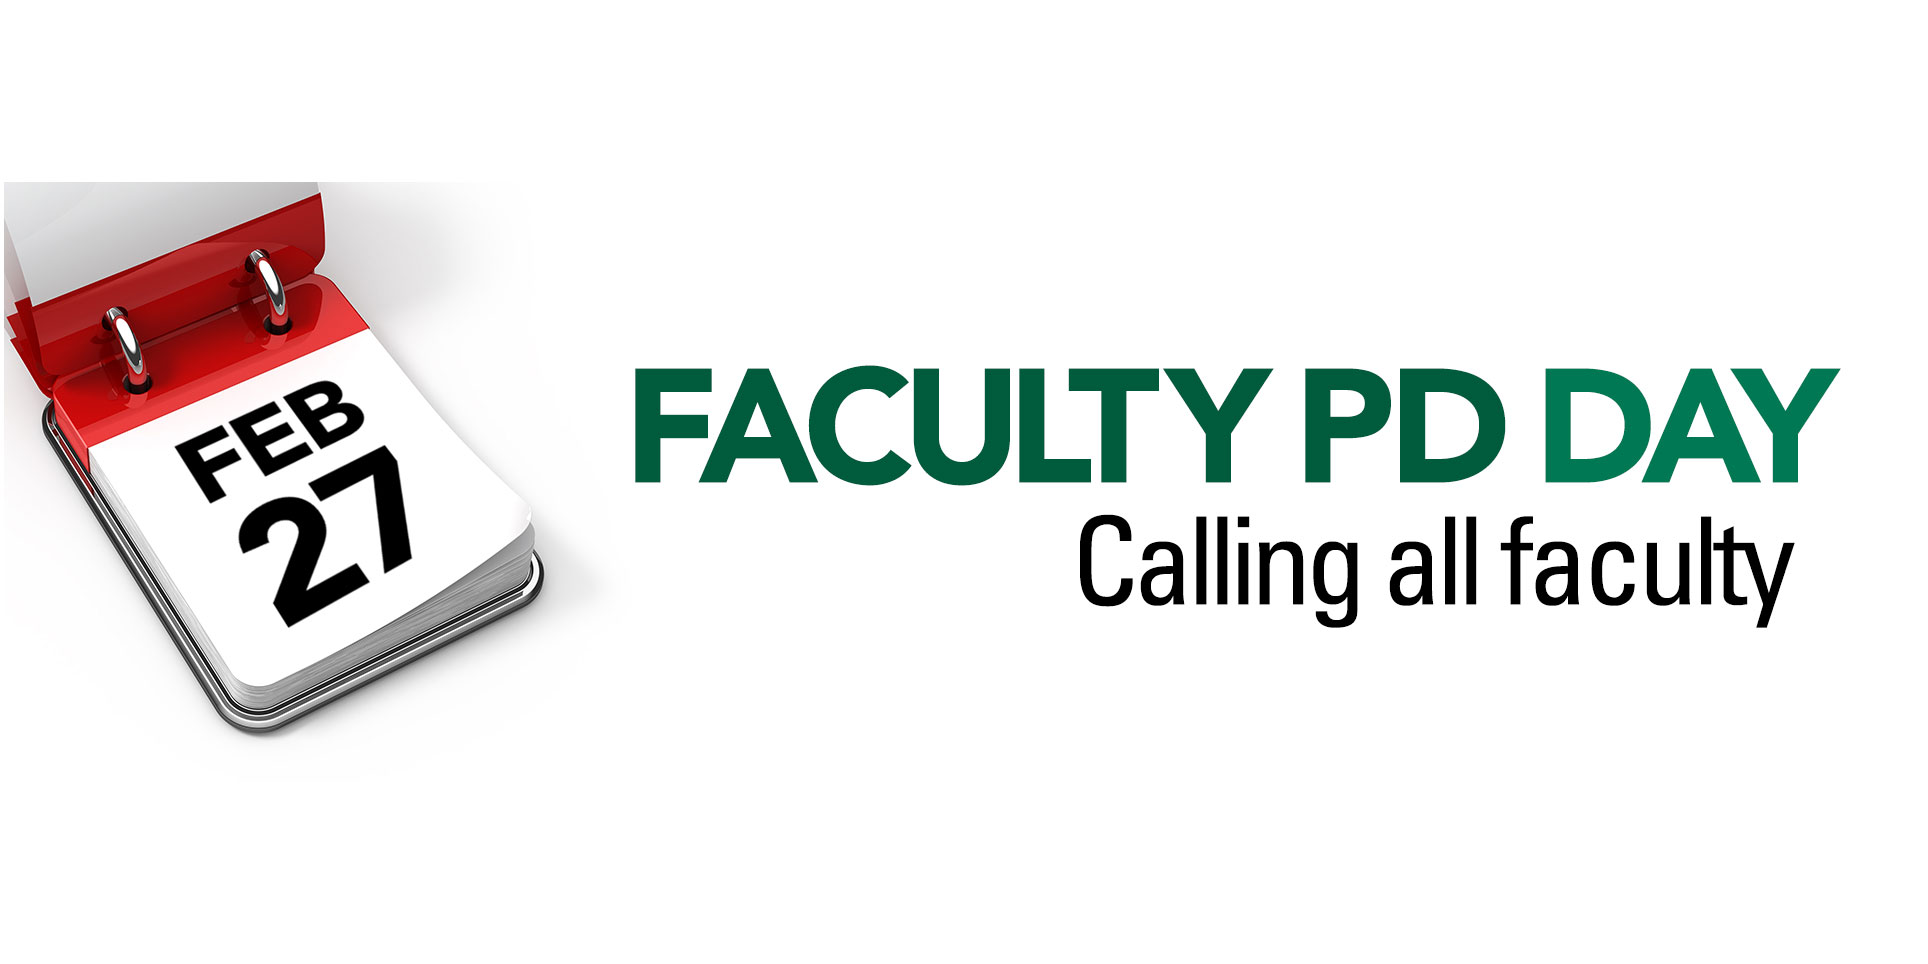 Faculty PD DAY Banner with event date of February 27th